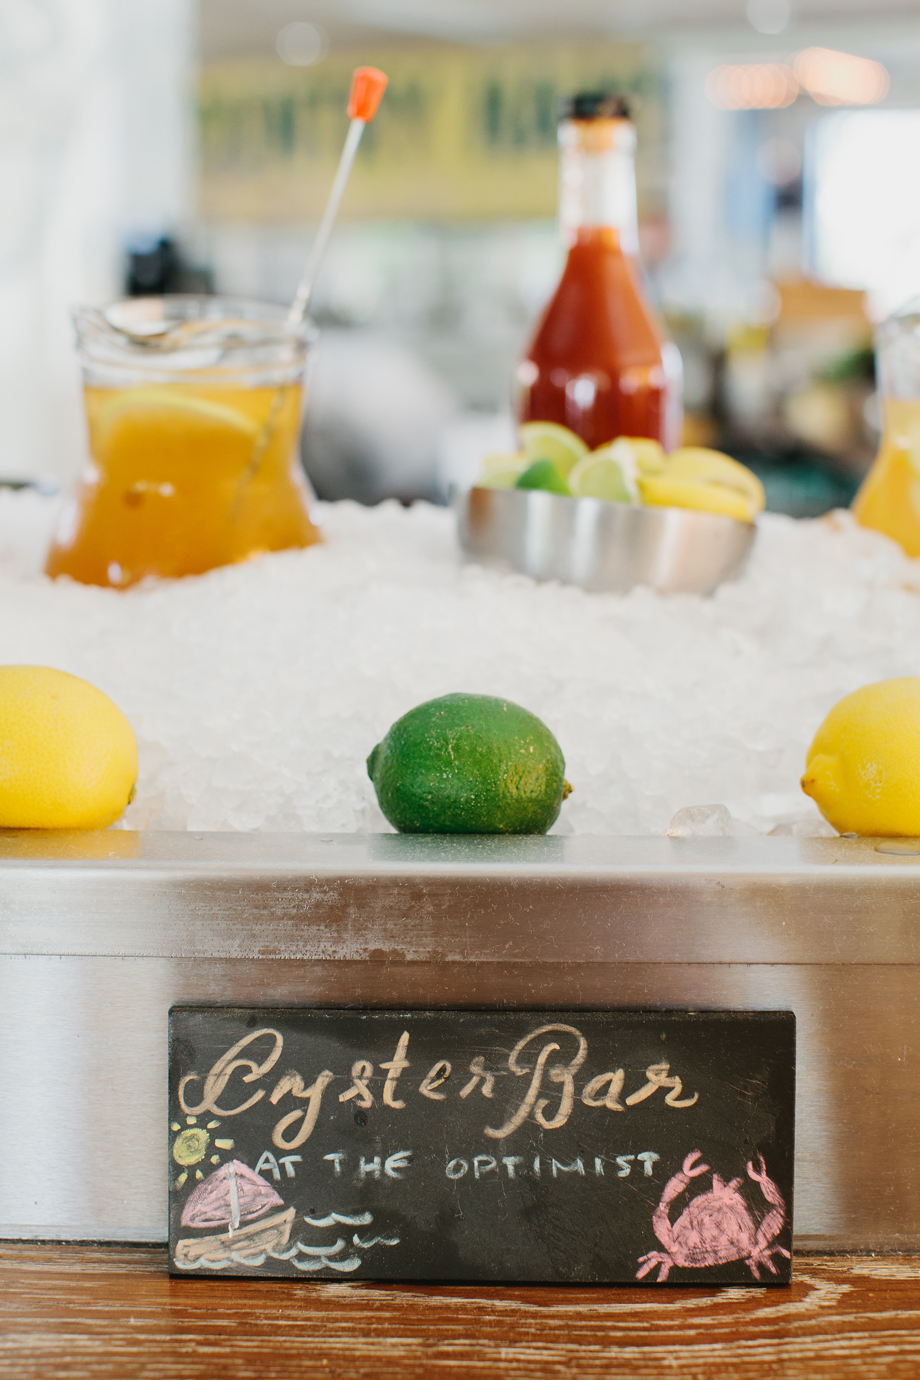 The Oyster bar at The Optimist | Smith Hanes. bar detail